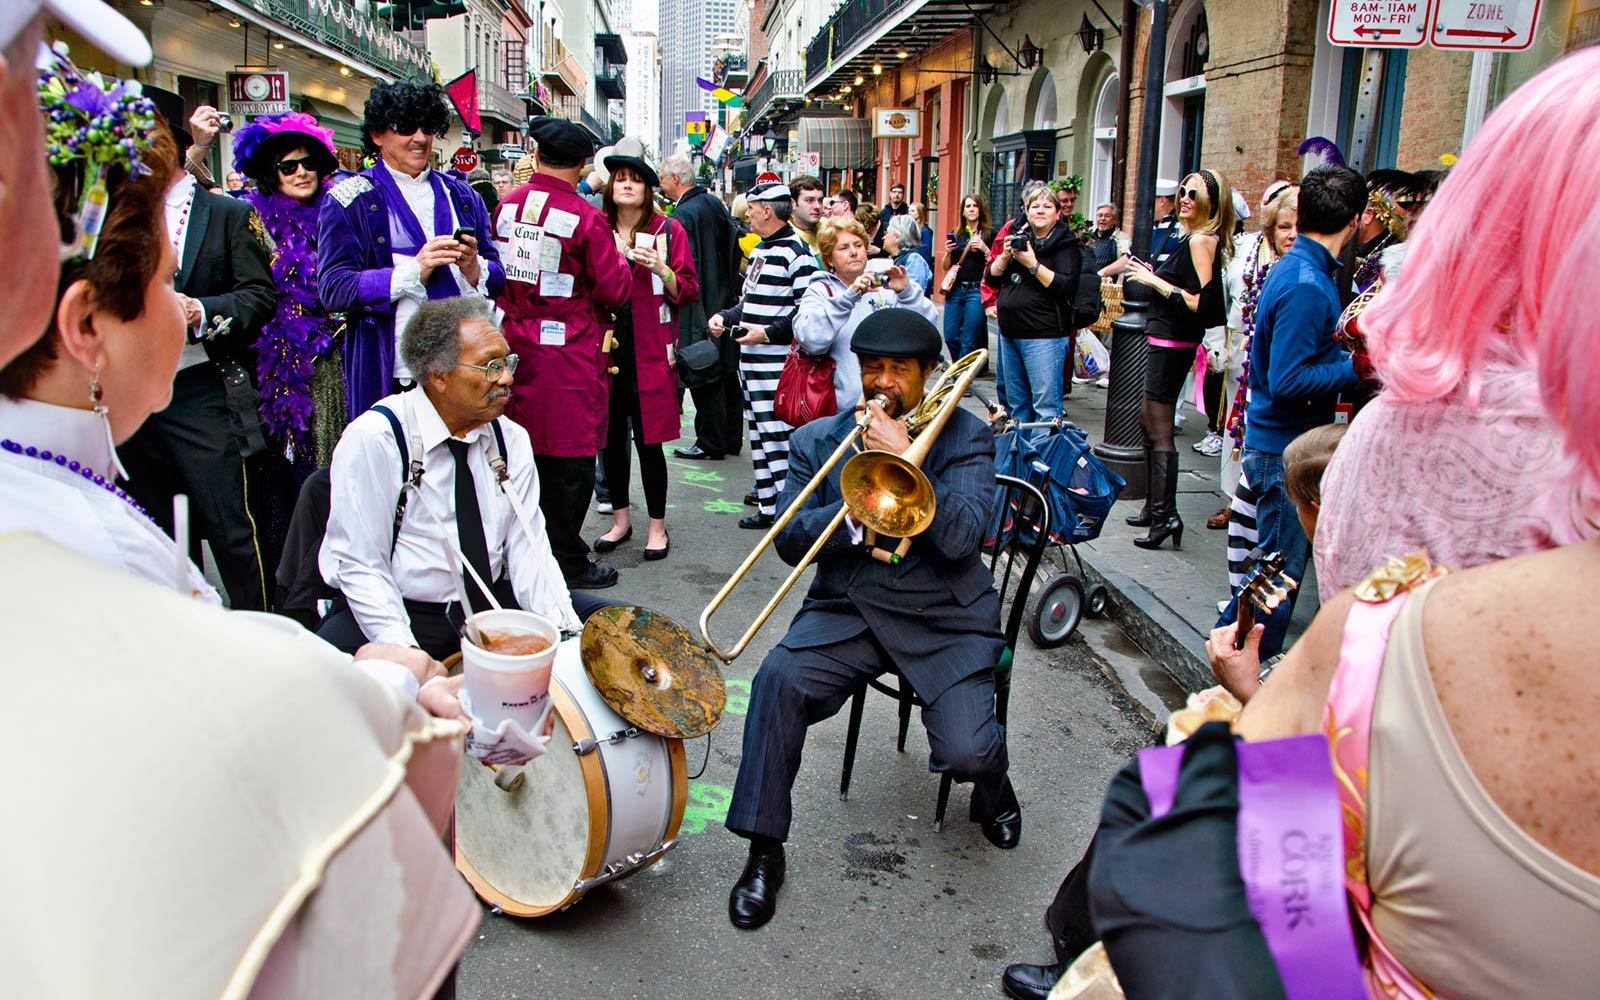 6. New Orleans, Louisiana